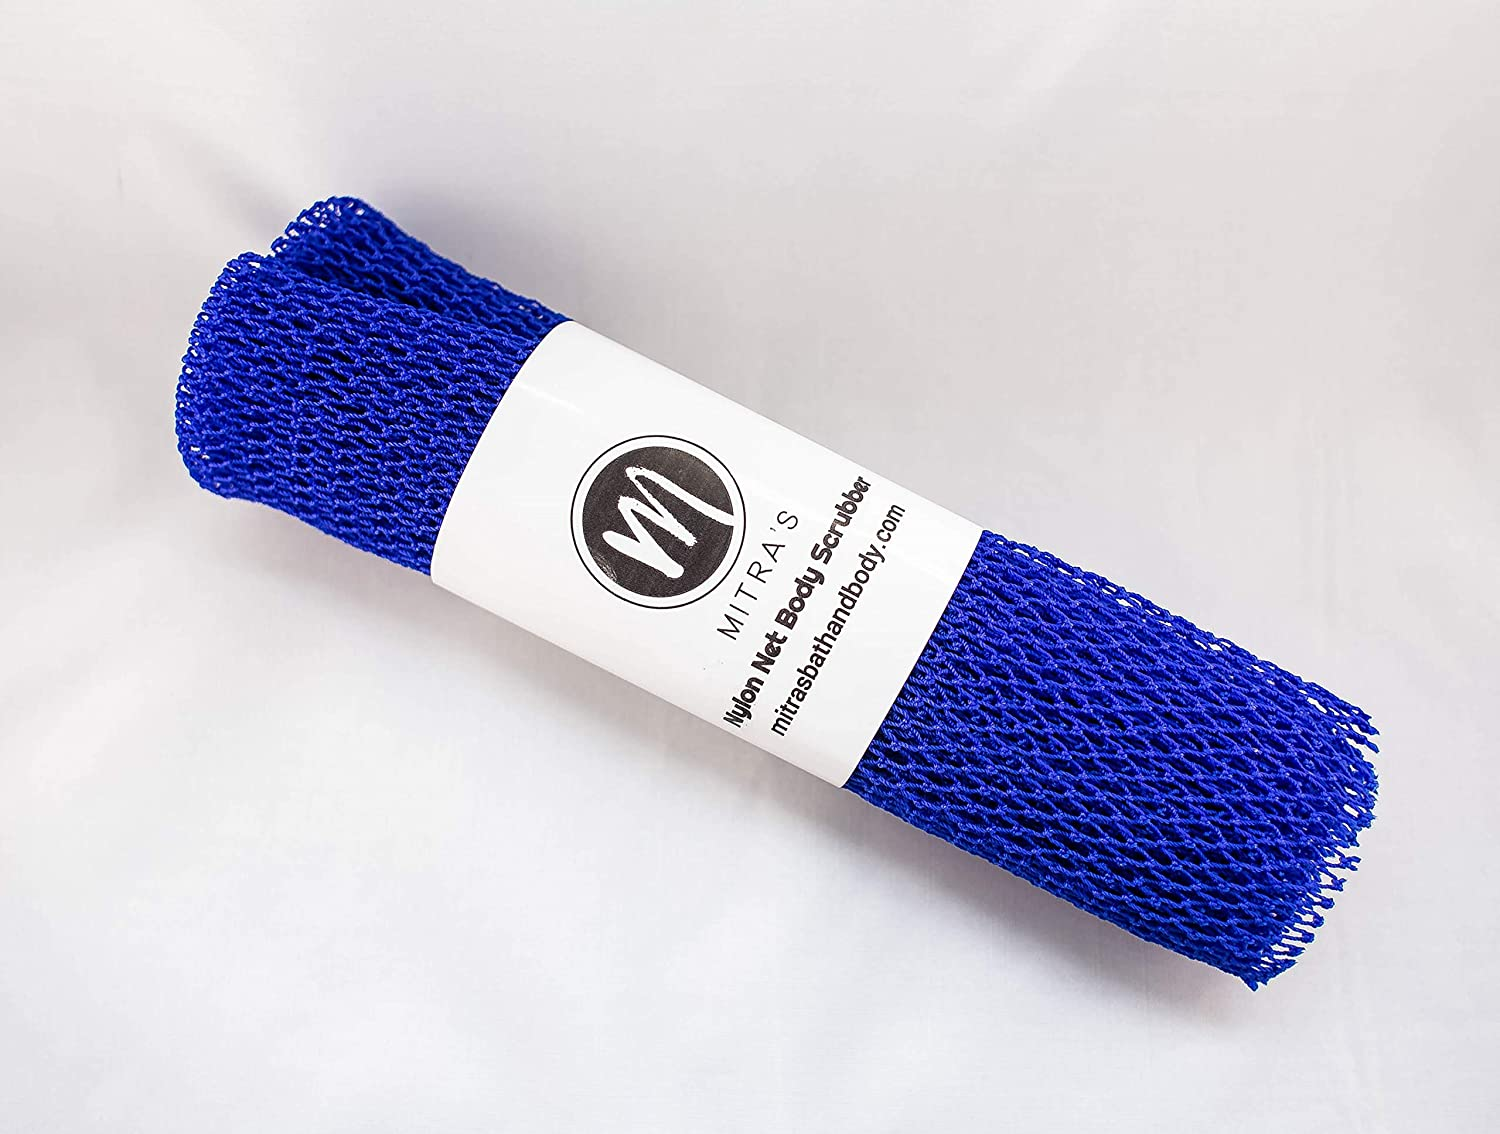 African Net Exfoliating Shower Body Scrubber/ Exfoliating Back Scrubber/Skin Smoother/ Great for Daily Use - Blue